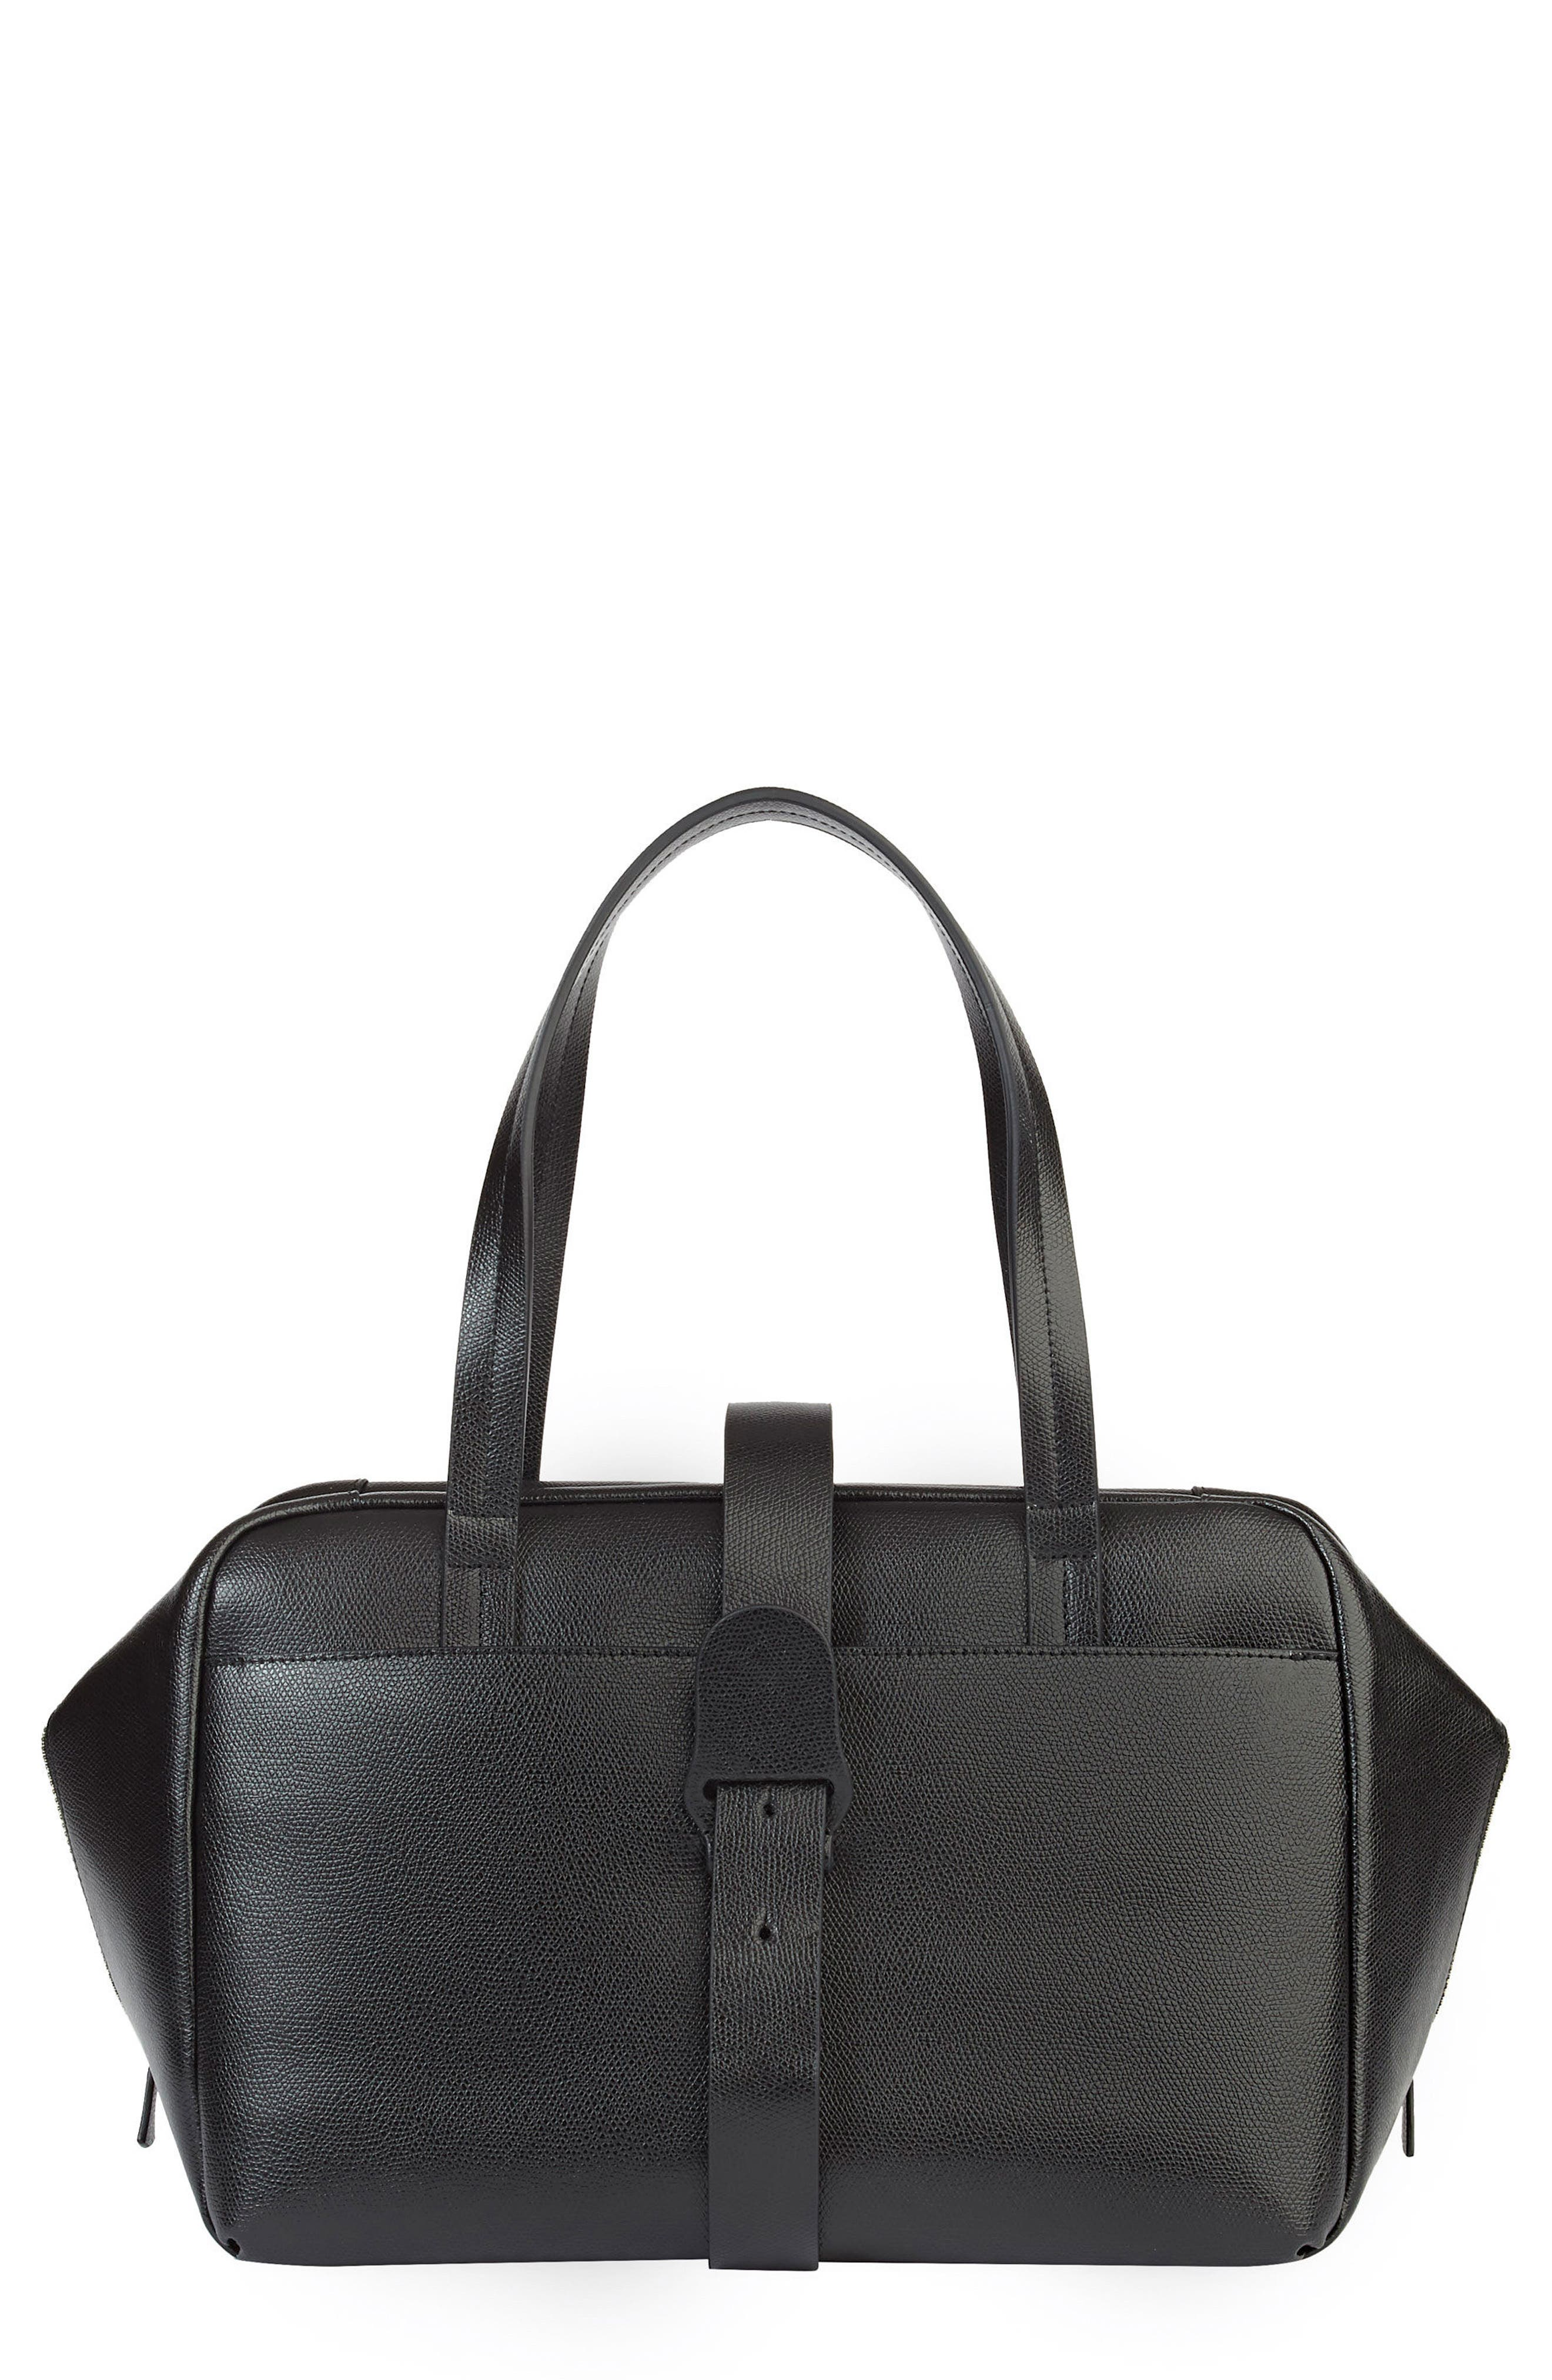 Senreve THE DOCTOR WATER RESISTANT TEXTURED LEATHER SATCHEL - BLACK